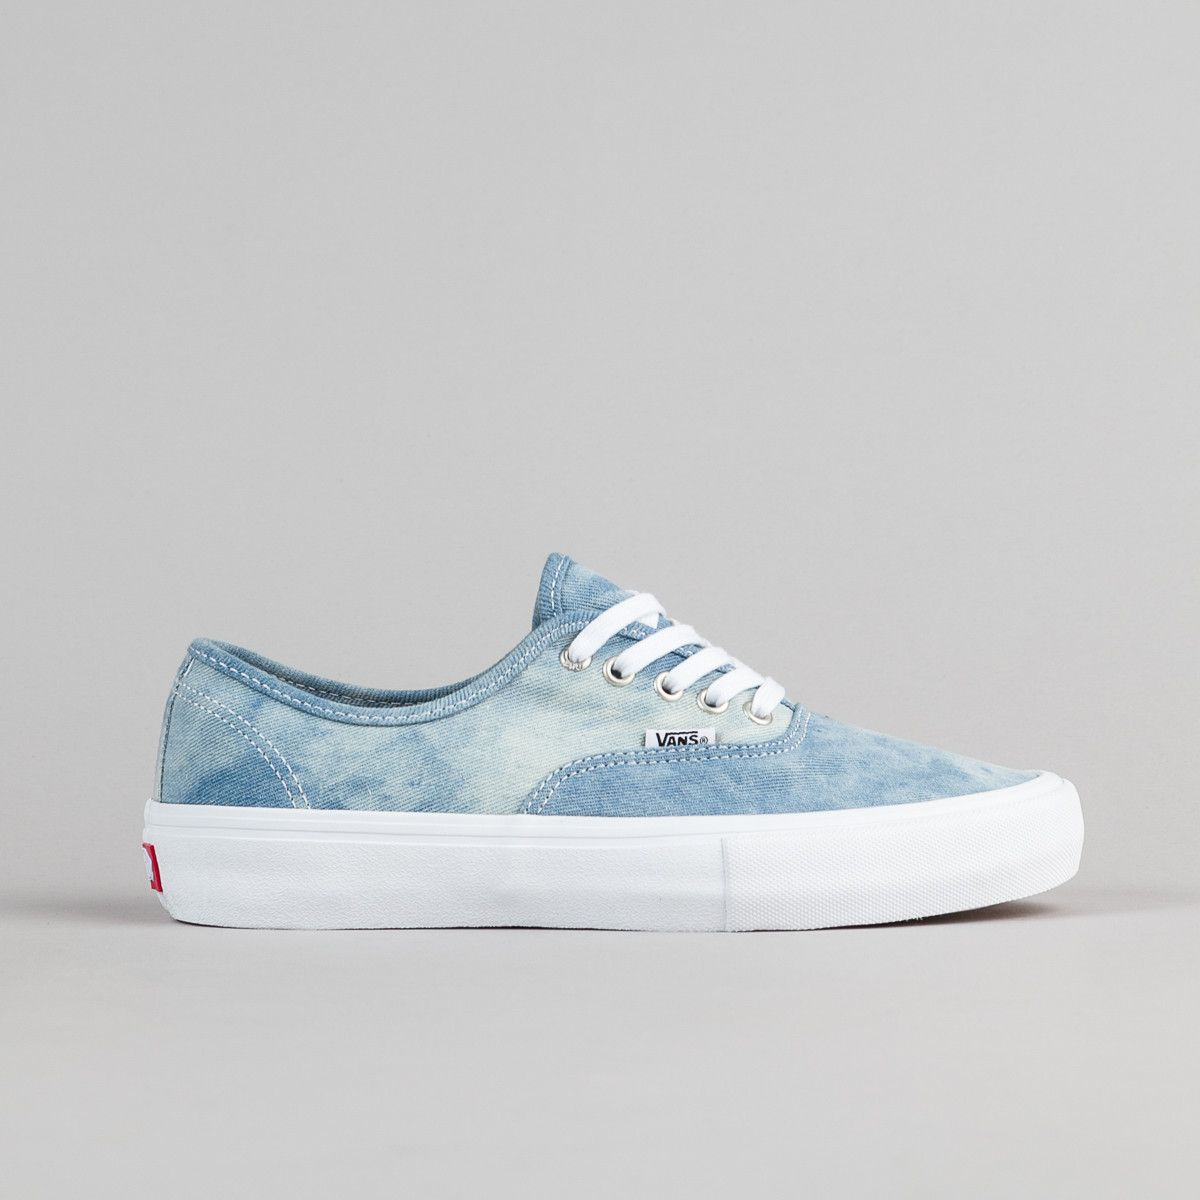 4dba4a4366 Vans Authentic Pro Shoes - Denim   White